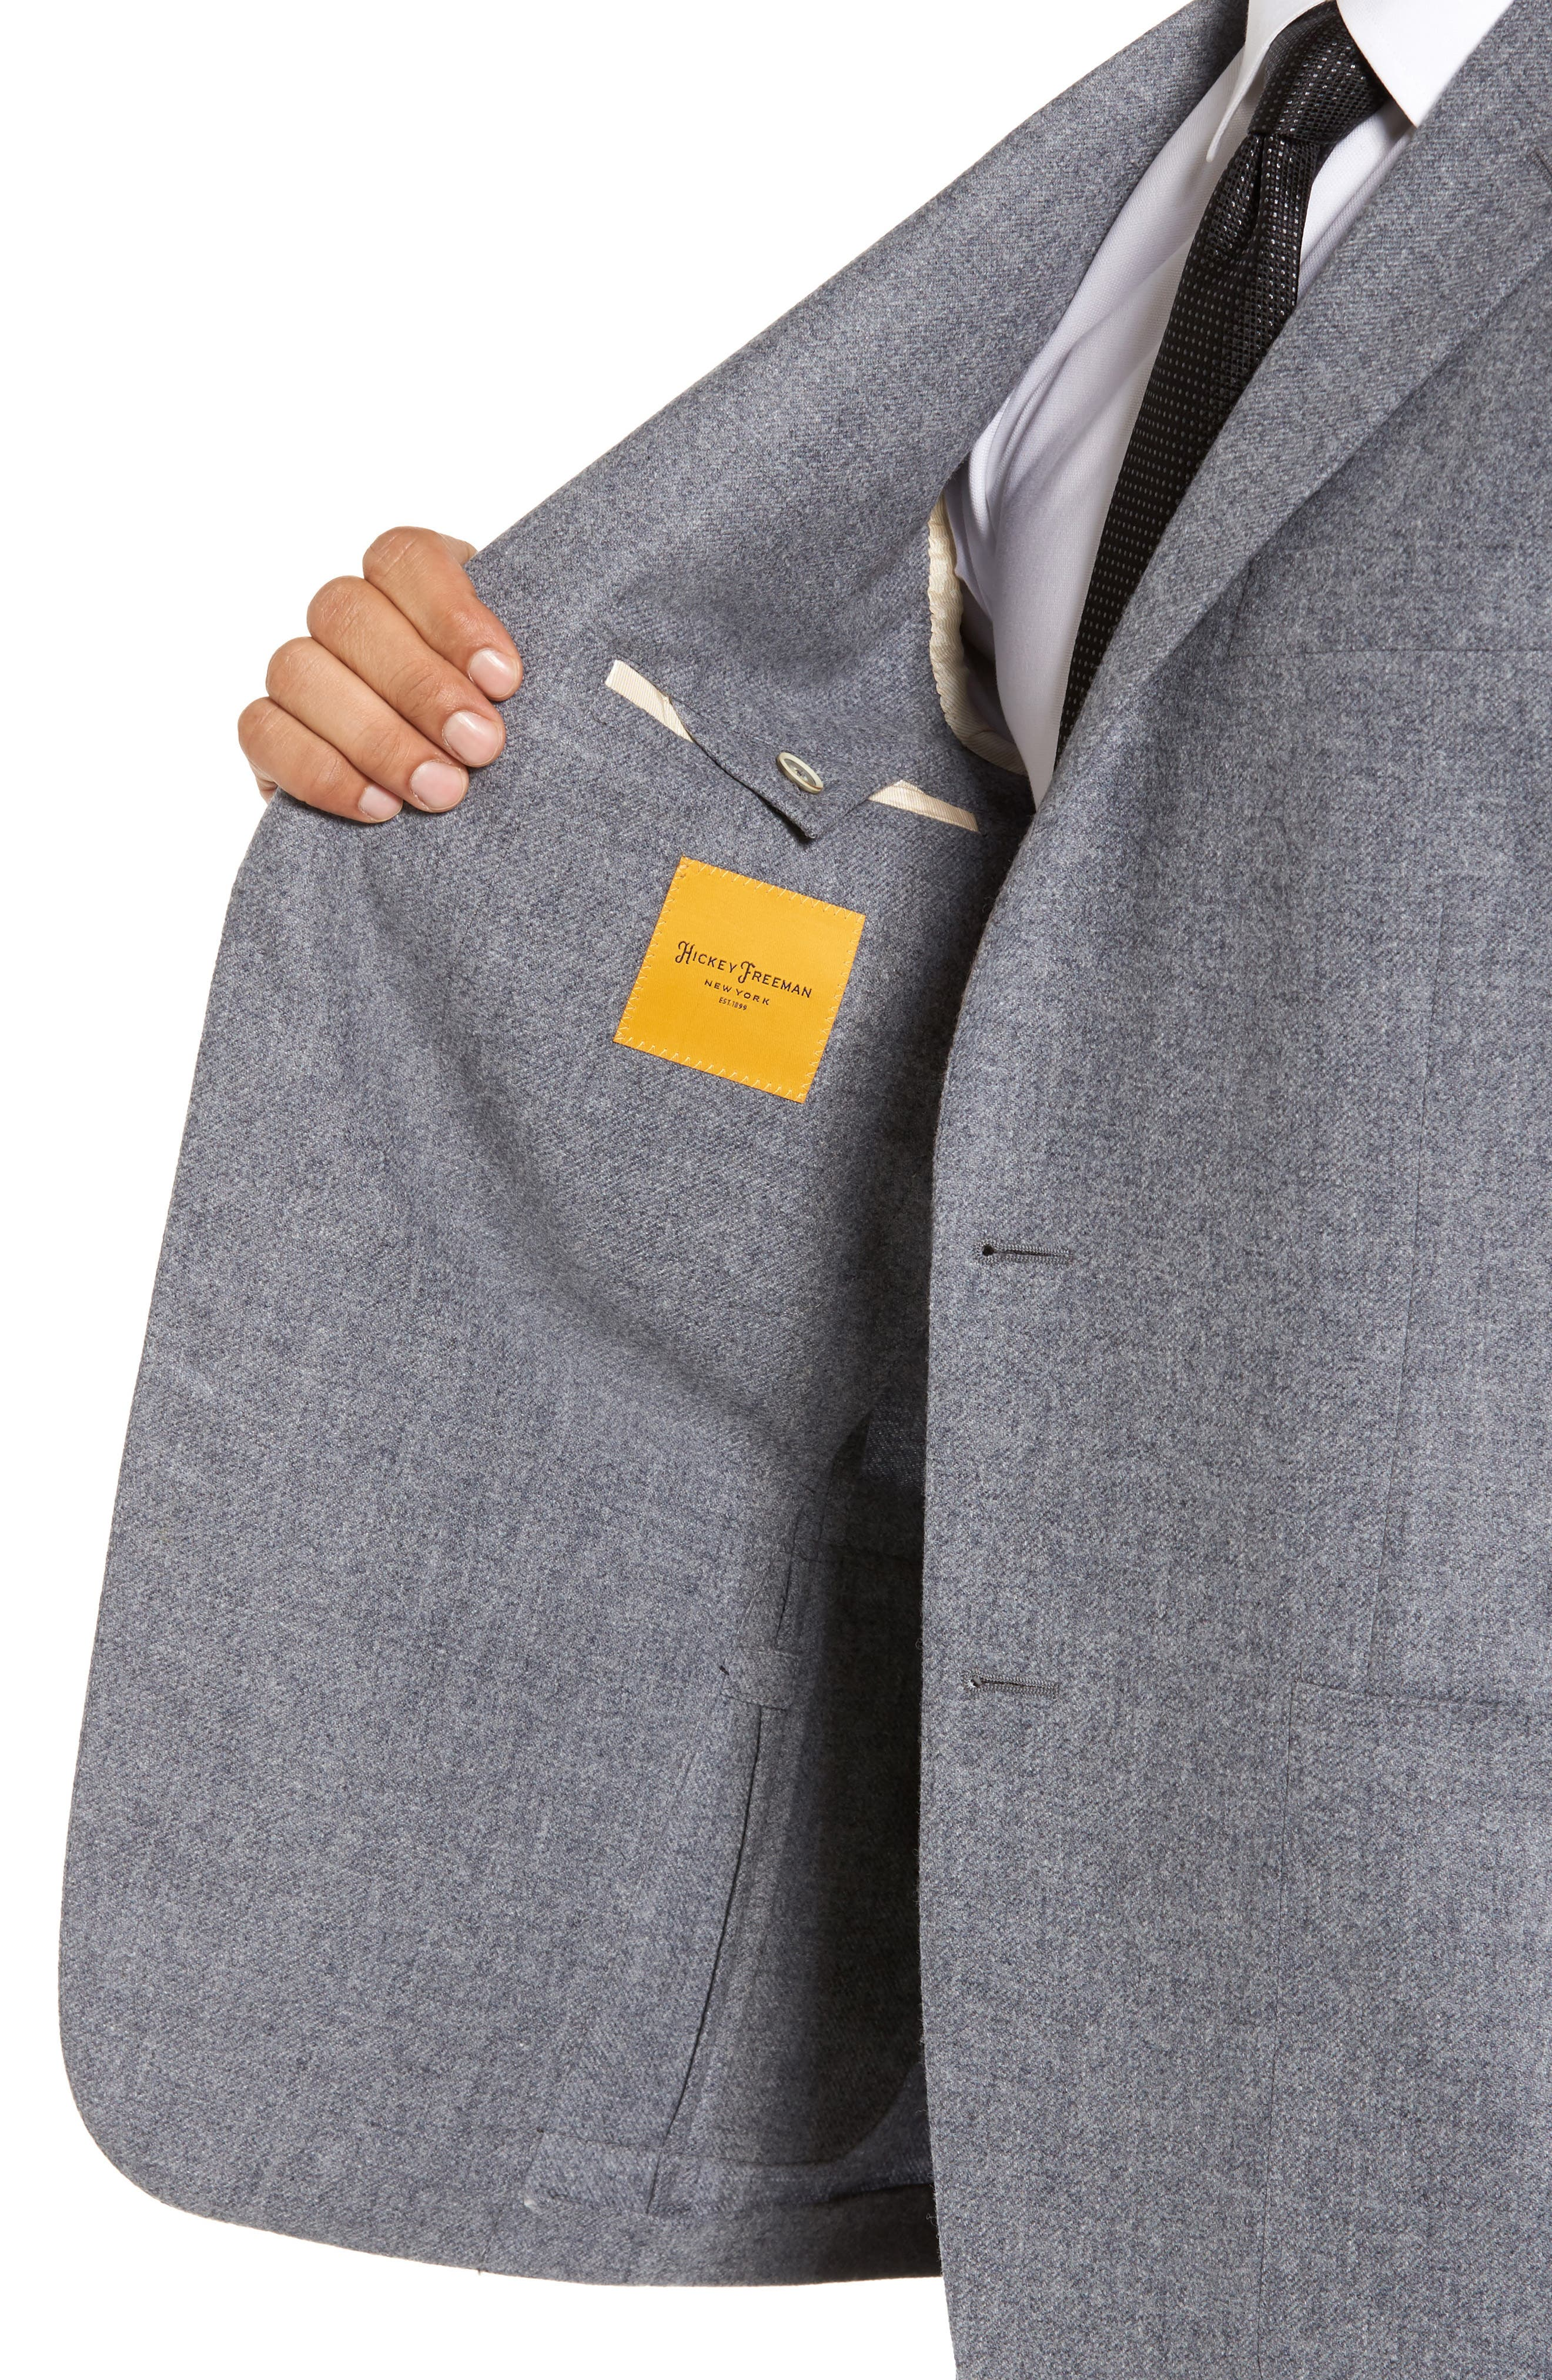 Classic B Fit Wool & Cashmere Blazer,                             Alternate thumbnail 4, color,                             Light Grey Solid